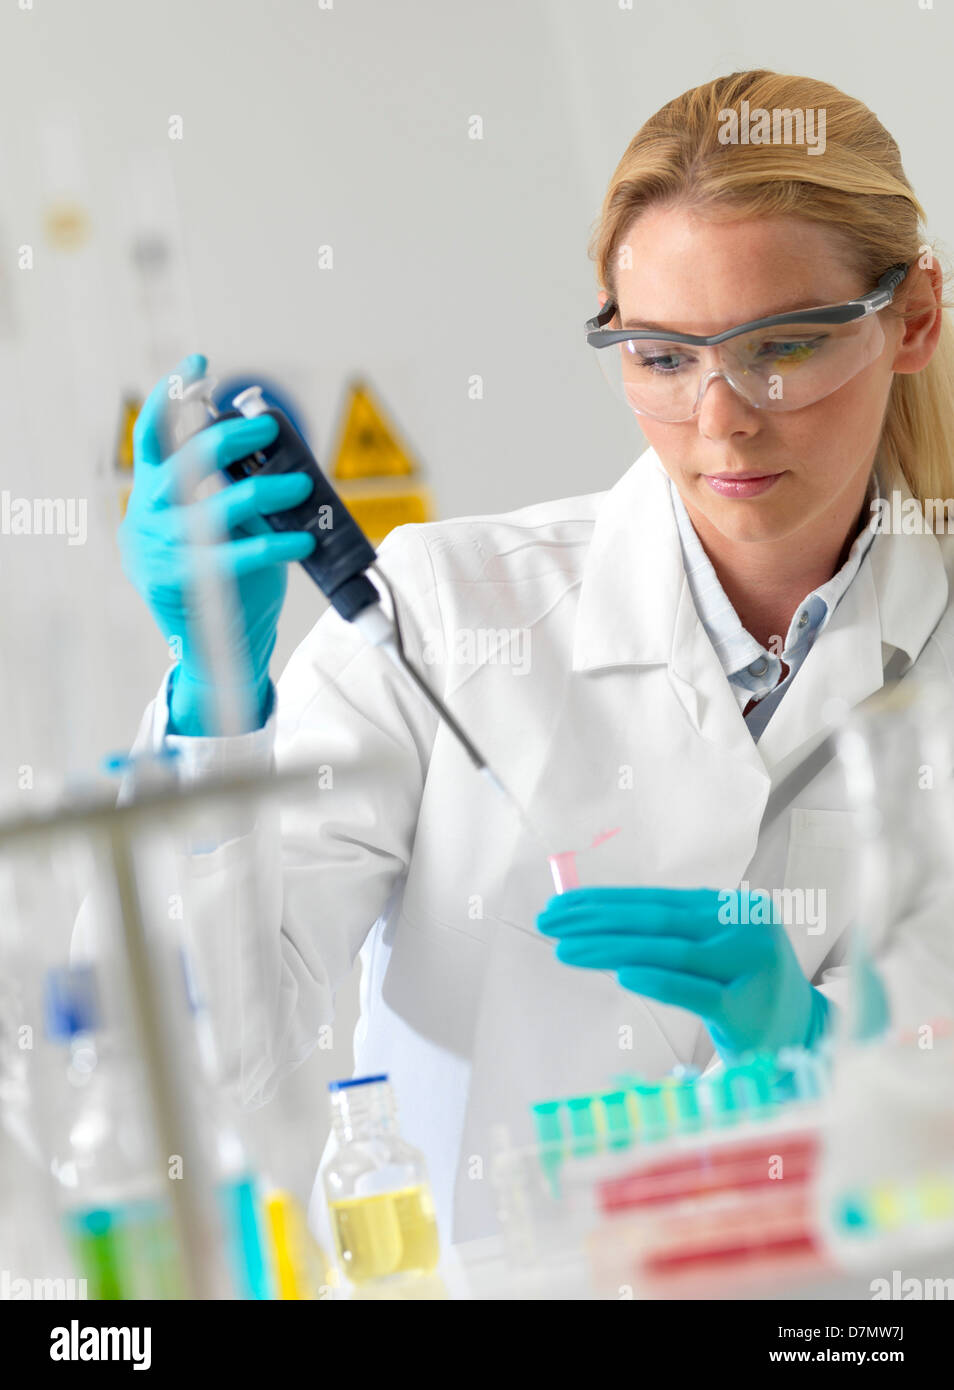 Researcher pipetting liquid - Stock Image